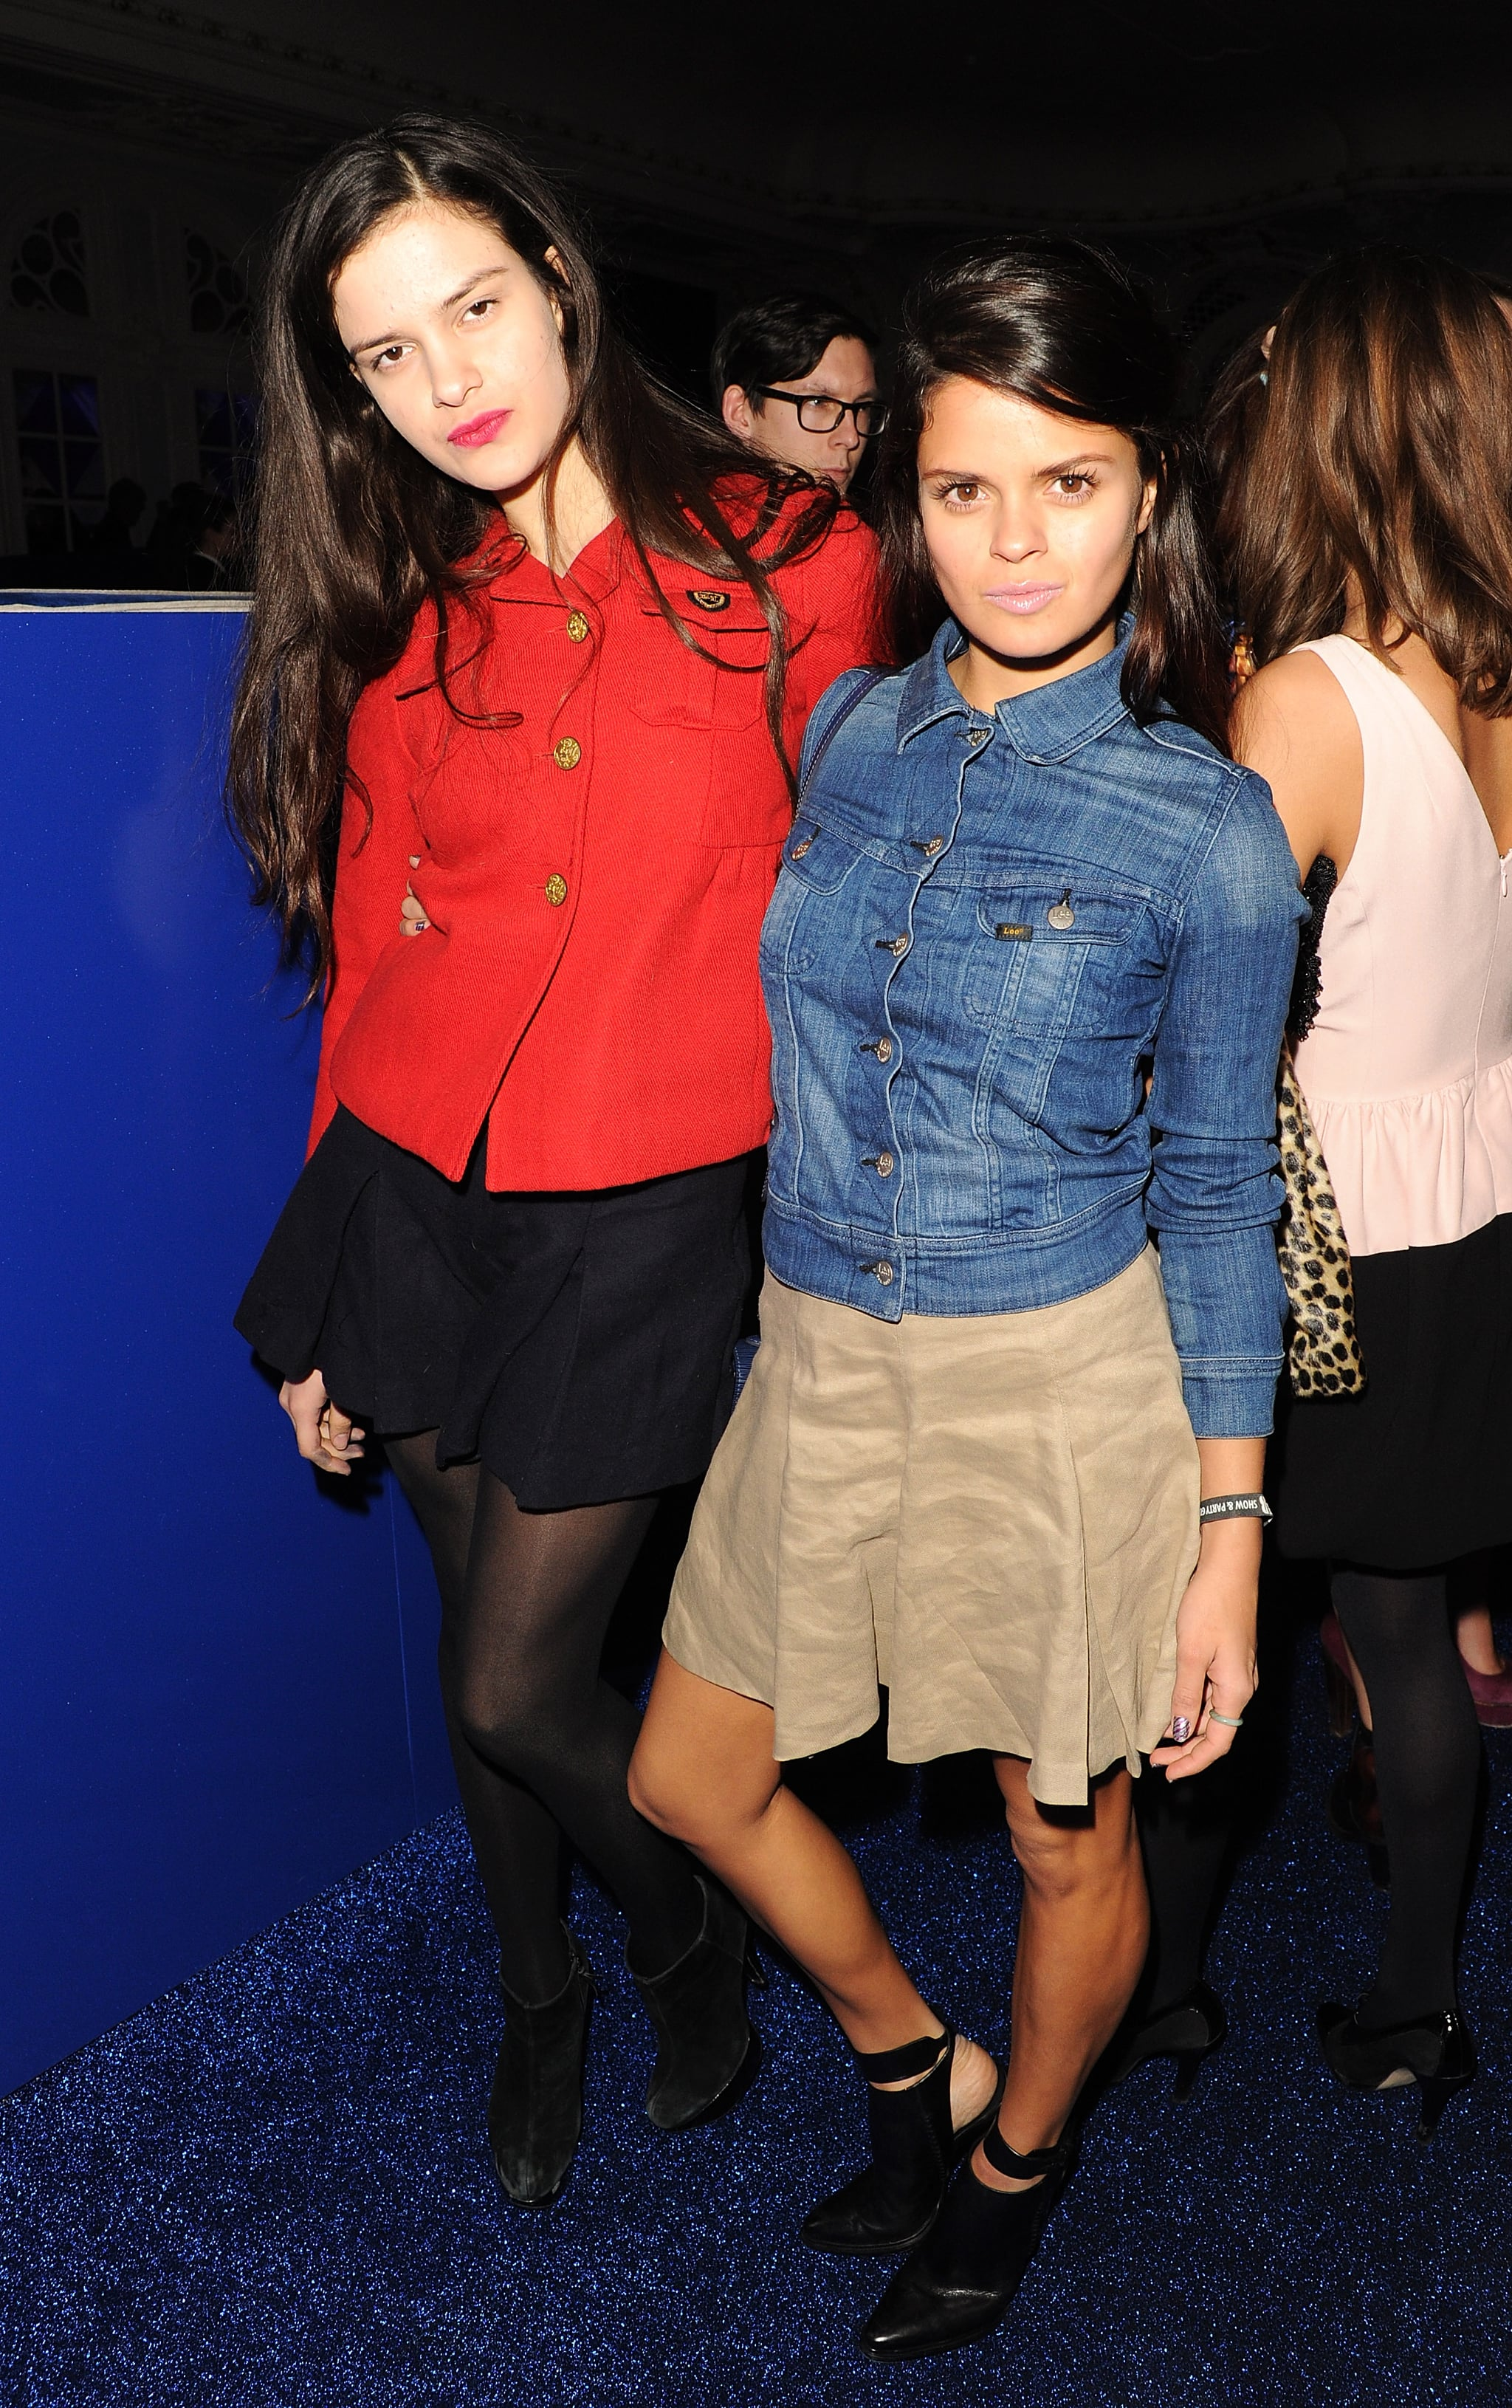 Bip Ling and Evangeline Ling at a post-Brit Awards party in London.